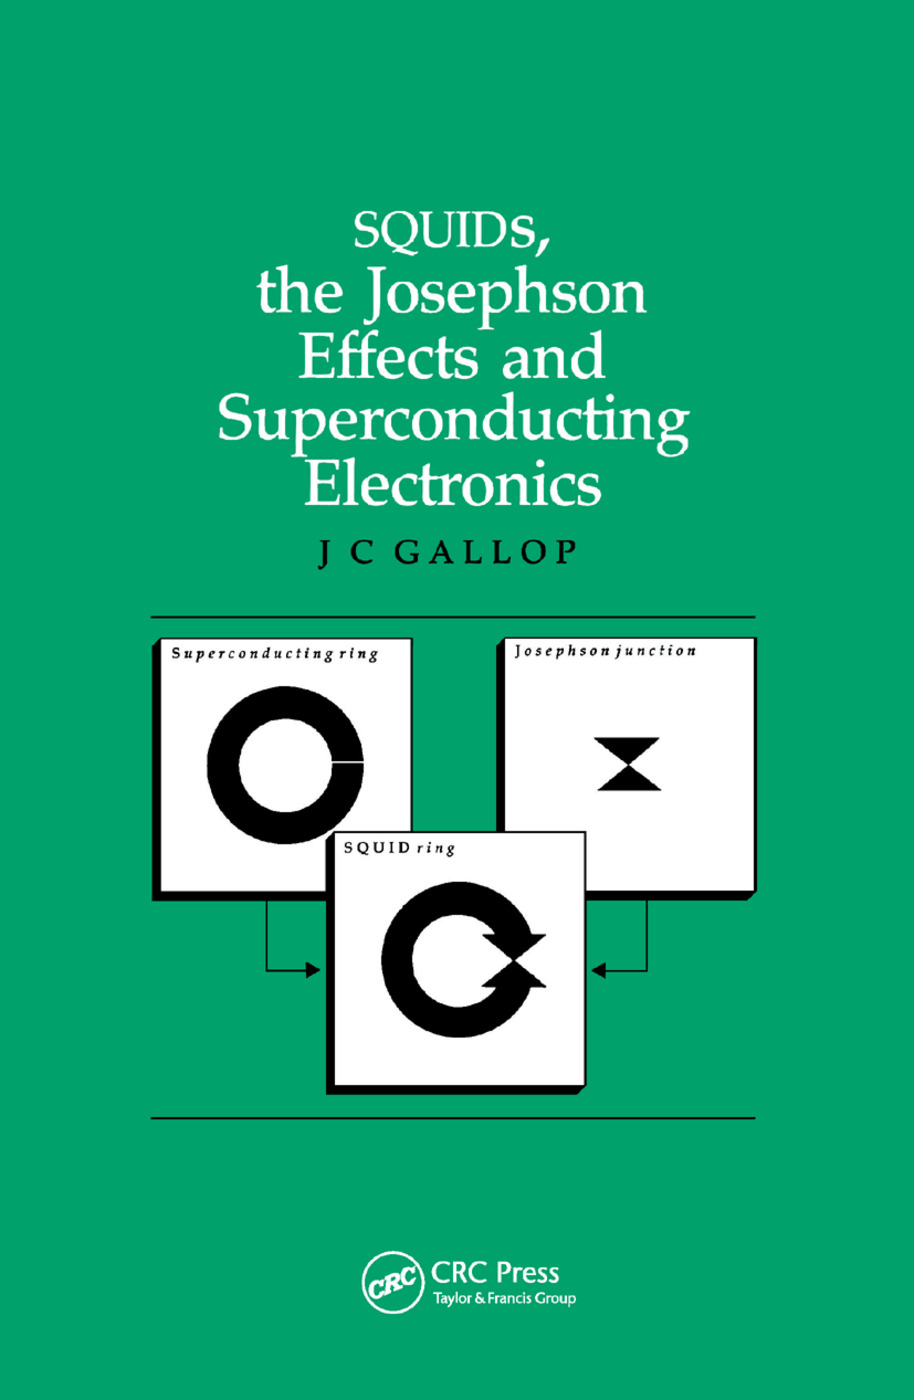 SQUIDs, the Josephson Effects and Superconducting Electronics